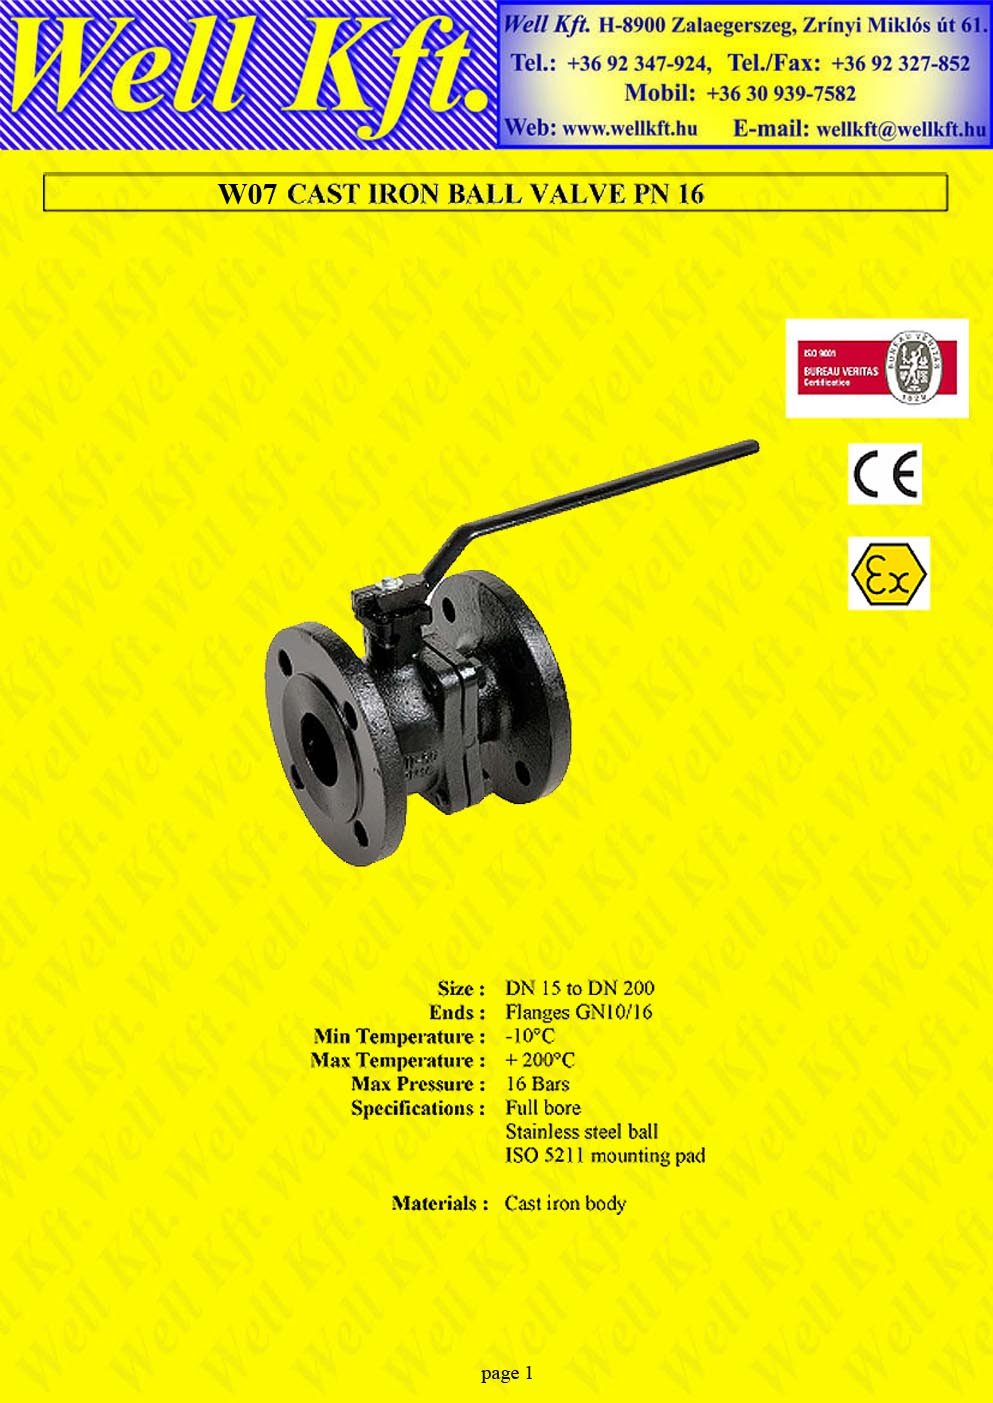 Ball valve 2 pieces cast iron ISO pad PN 16  (1.)